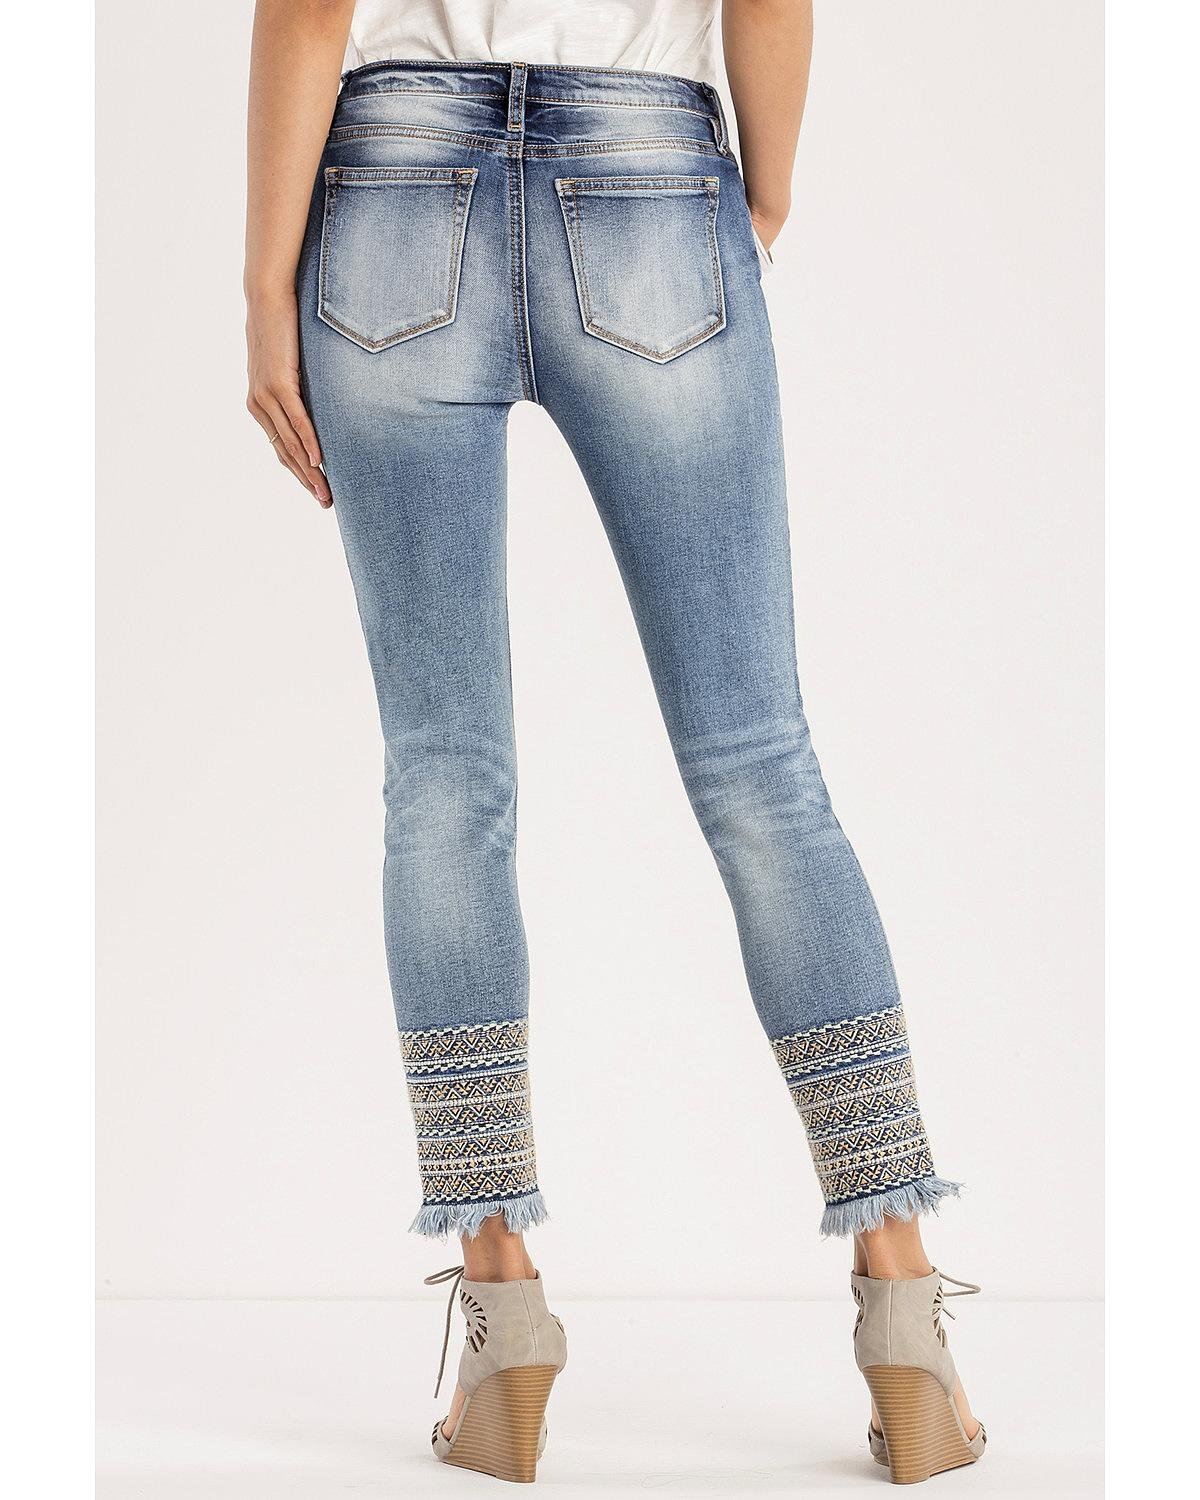 Miss Me Women's A Groove Thang Mid-Rise Ankle Skinny Jeans Indigo 29